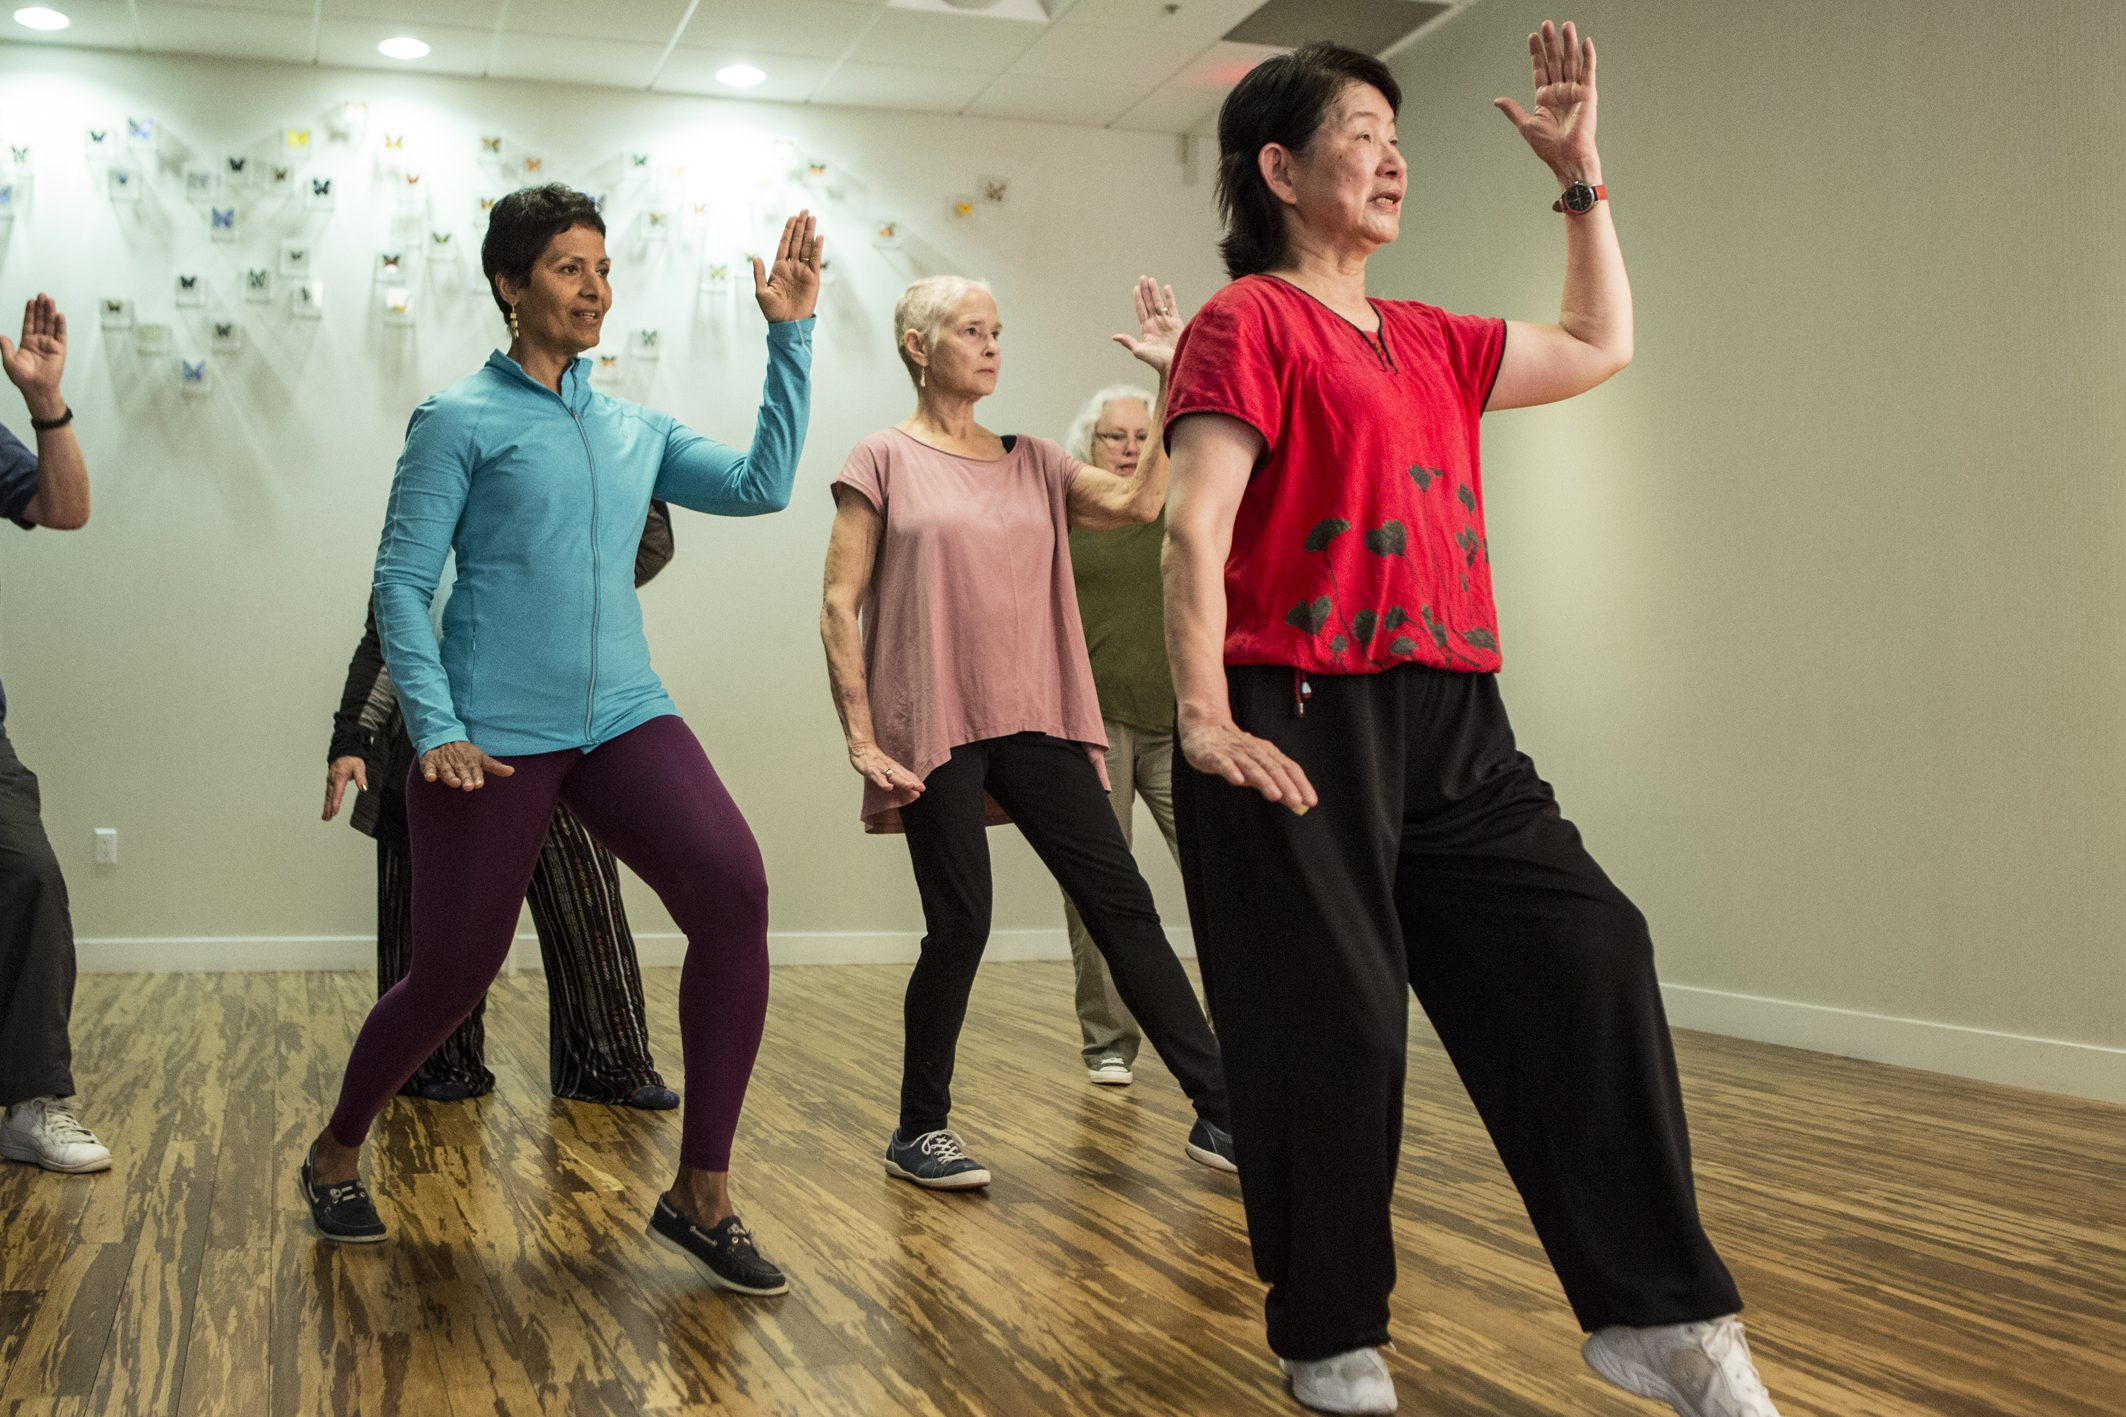 Multi diverse group demonstrating t'ai chi poses